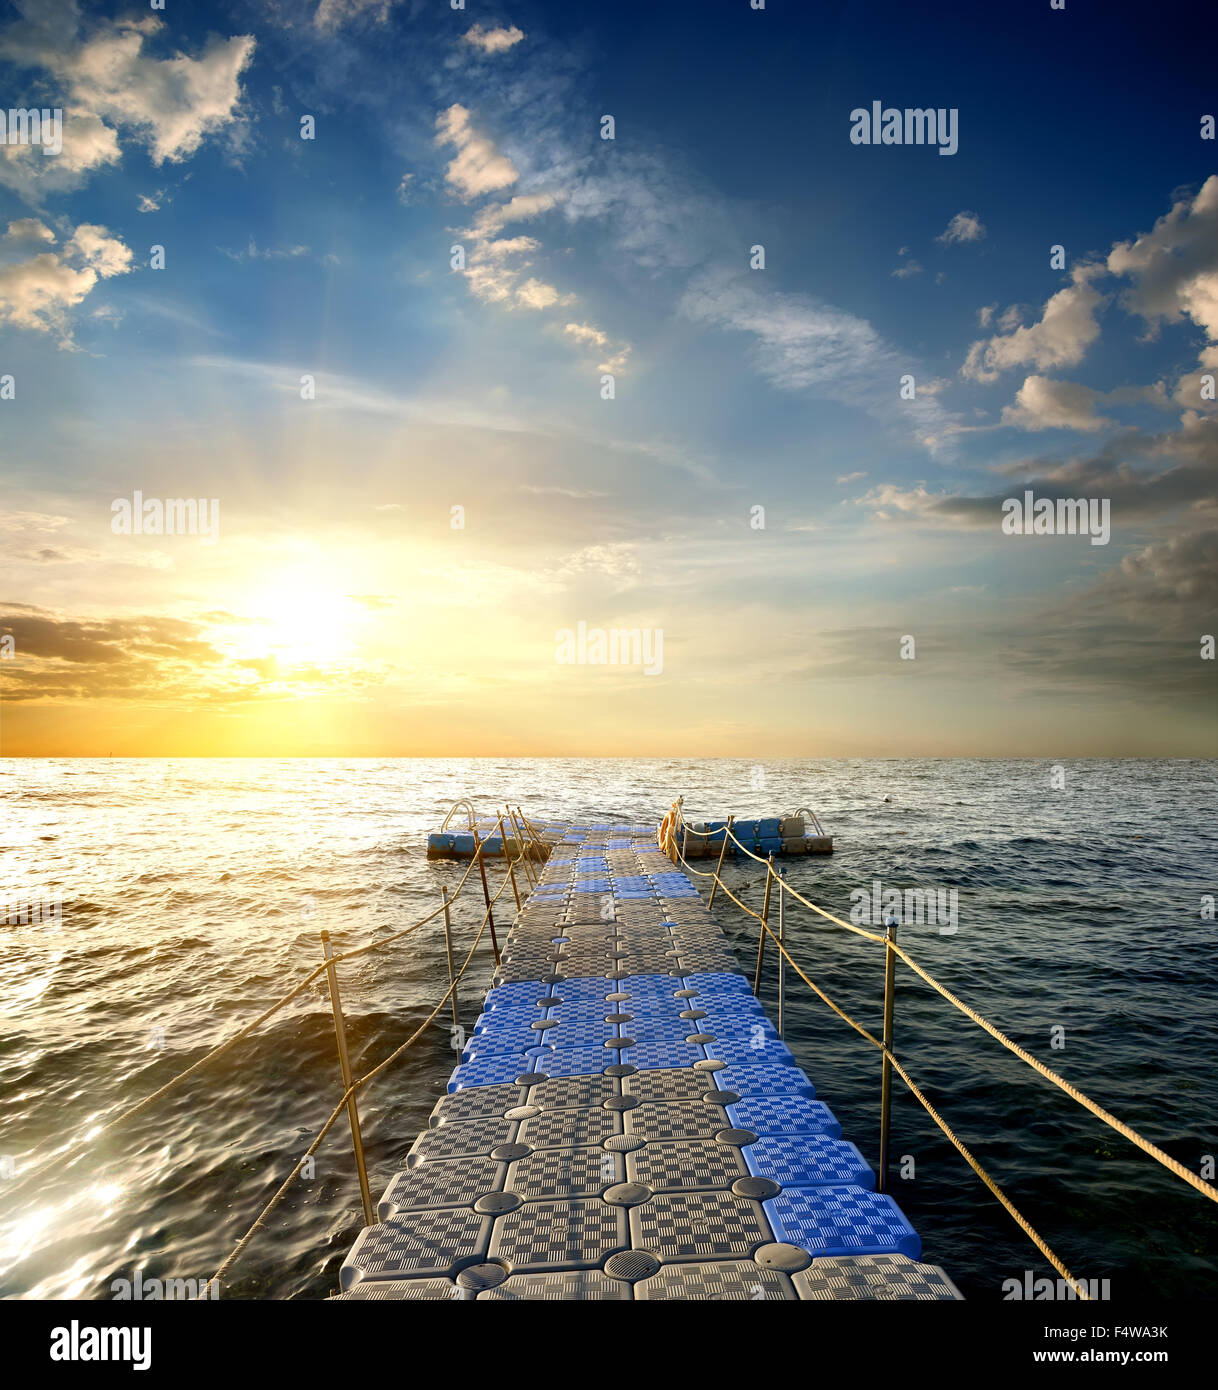 Pontoon with handrails in the sea at sunset - Stock Image